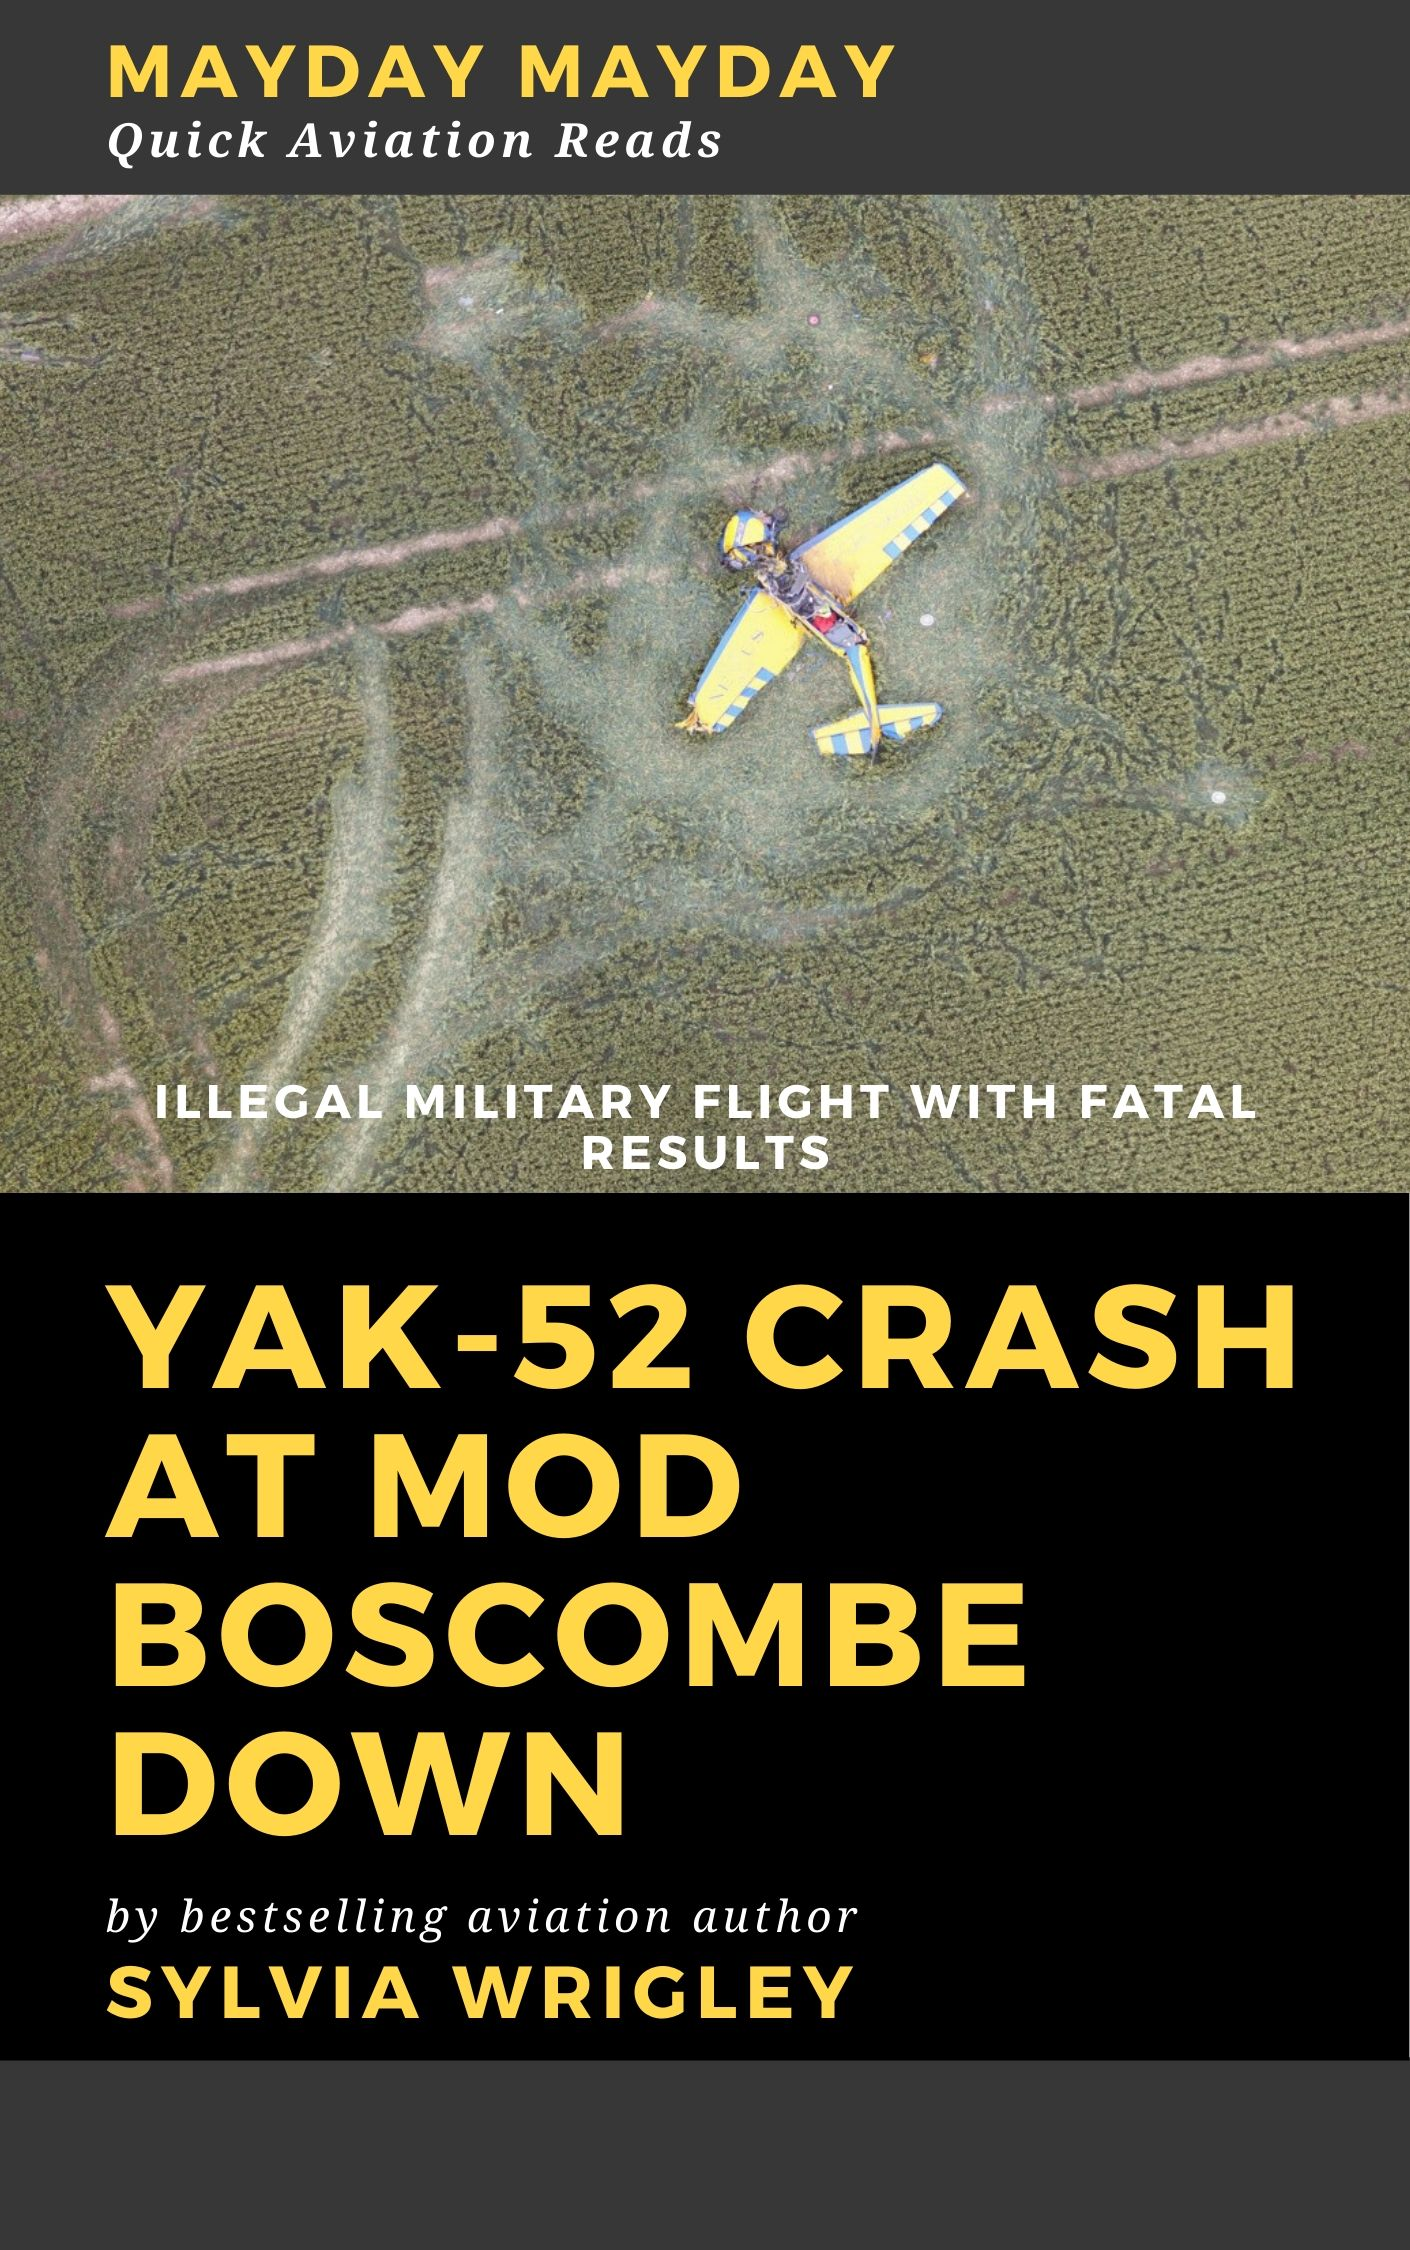 Yak-52 Crash at MoD Boscombe Down: Illegal Flight with Fatal Results